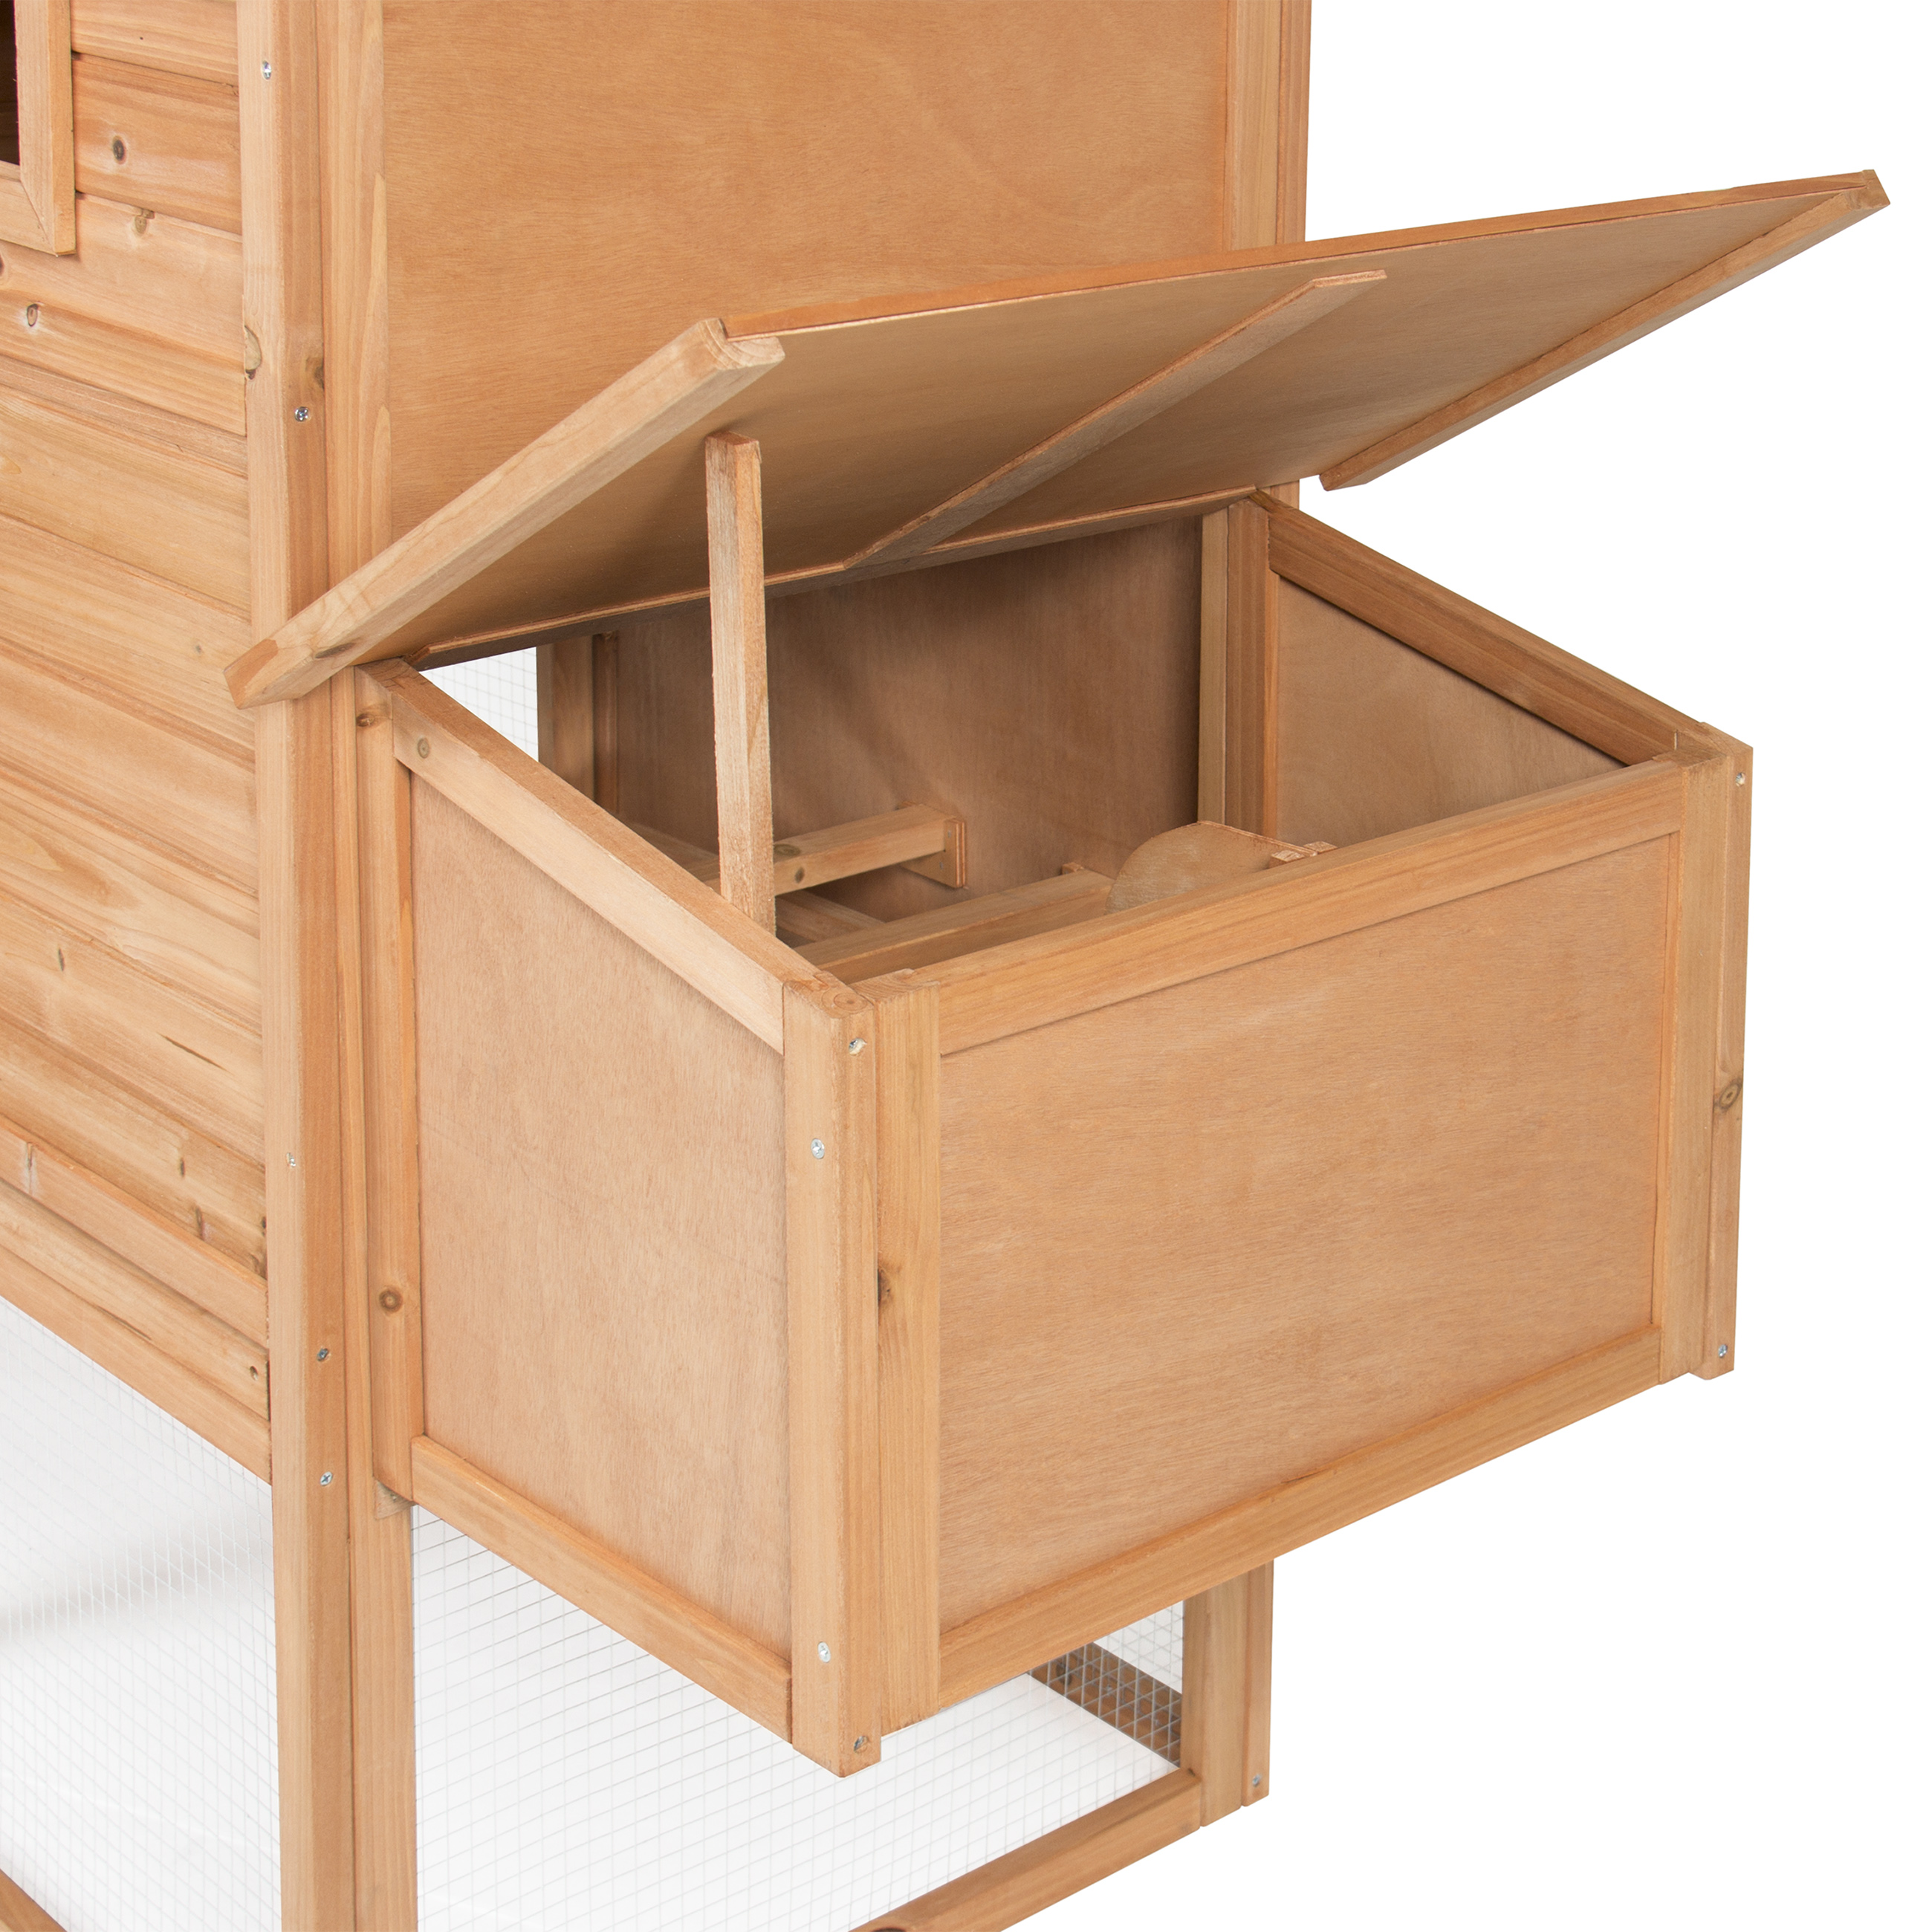 Best Choice Products 80in Outdoor Wooden Chicken Coop Hen House